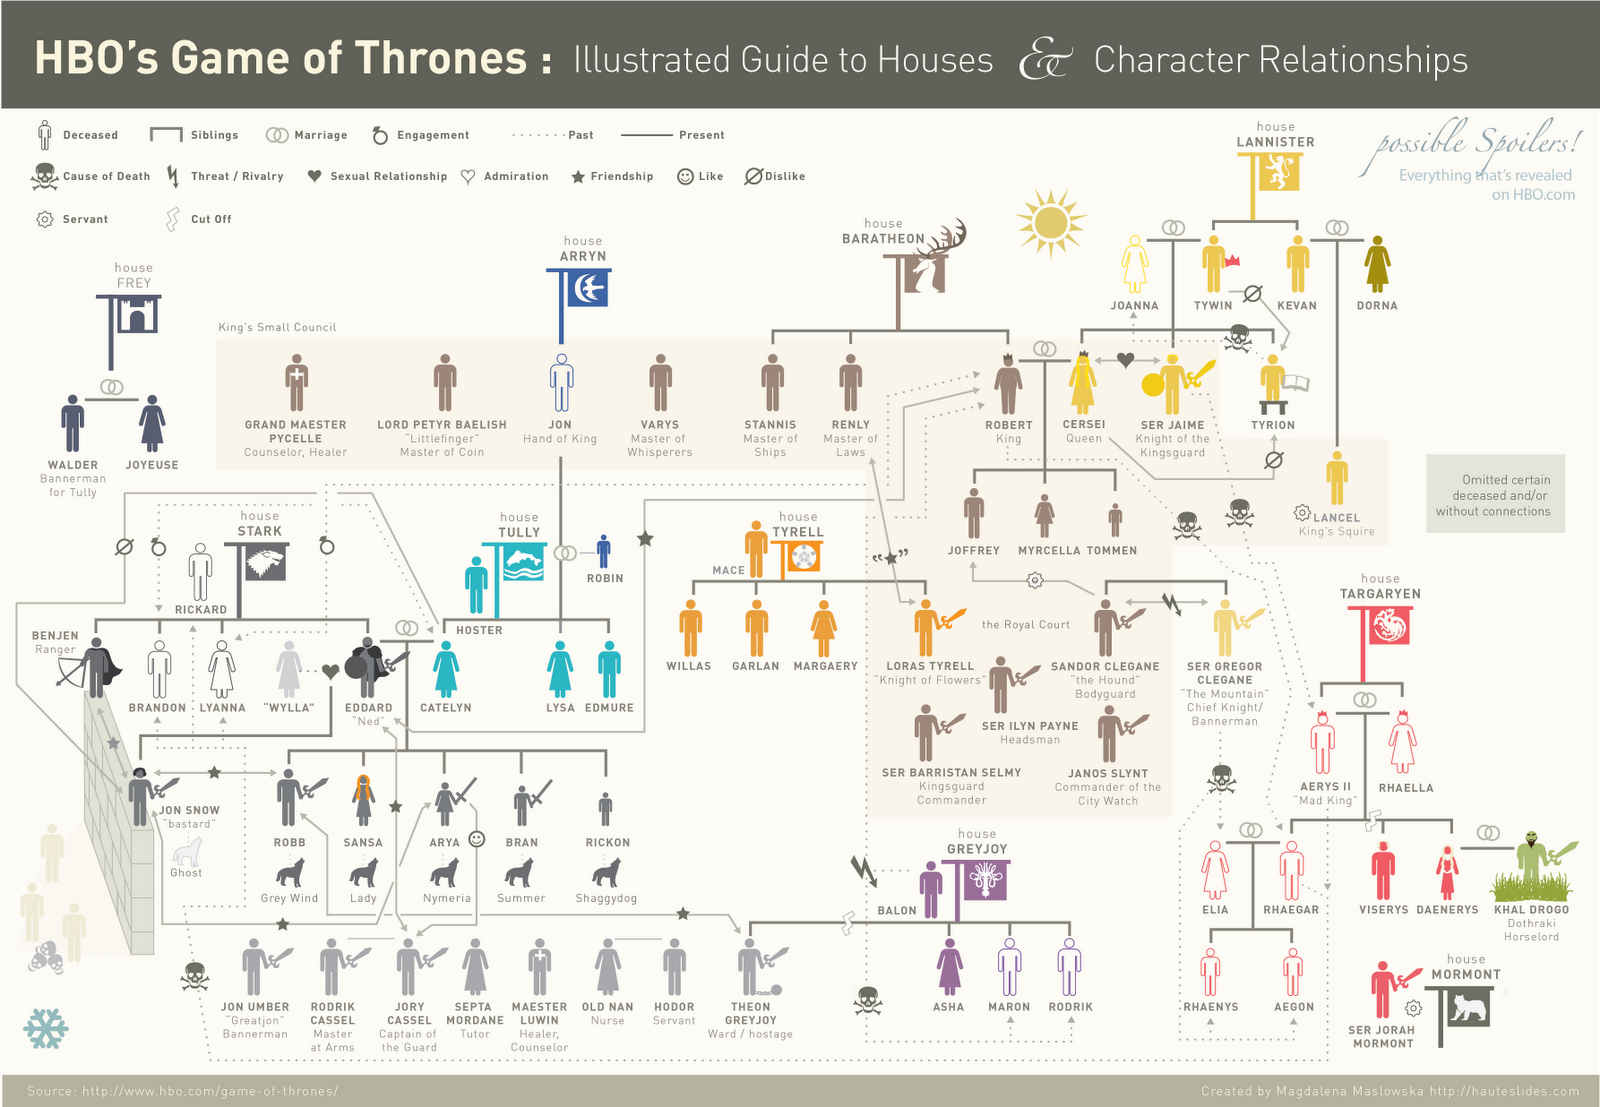 http://3.bp.blogspot.com/-c686xWTRP4o/TdhcflFbVDI/AAAAAAAAAJU/gJfQljTdRAY/s1600/Game-of-Thrones-Infographic-Enlarged.png